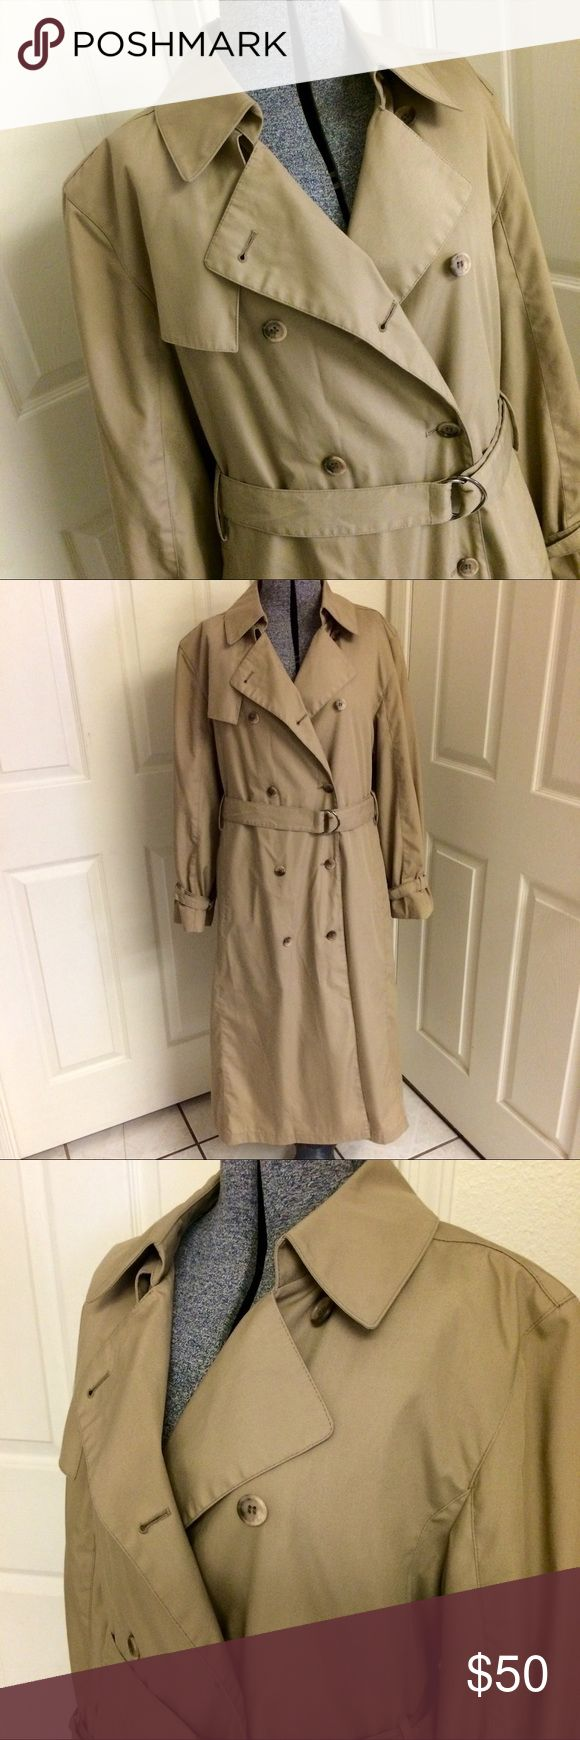 VINTAGE London Fog trench coat (L/XL) Beautiful trench coat by London Fog. In GREAT vintage condition! Pretty plaid liner is fully removable by zipper. Extra buttons included near material/care tag. Machine washable! (Or dry clean). 🍂 Versatile coat for Fall (wear without the liner) then wear it with the cozy liner as a warm coat for winter! ❄️ Will fit a Large - XL (labeled as 14 Regular). Total length 47 inches, inseam under arms 16.5 inches, & 25 inches across back (measured laying flat…